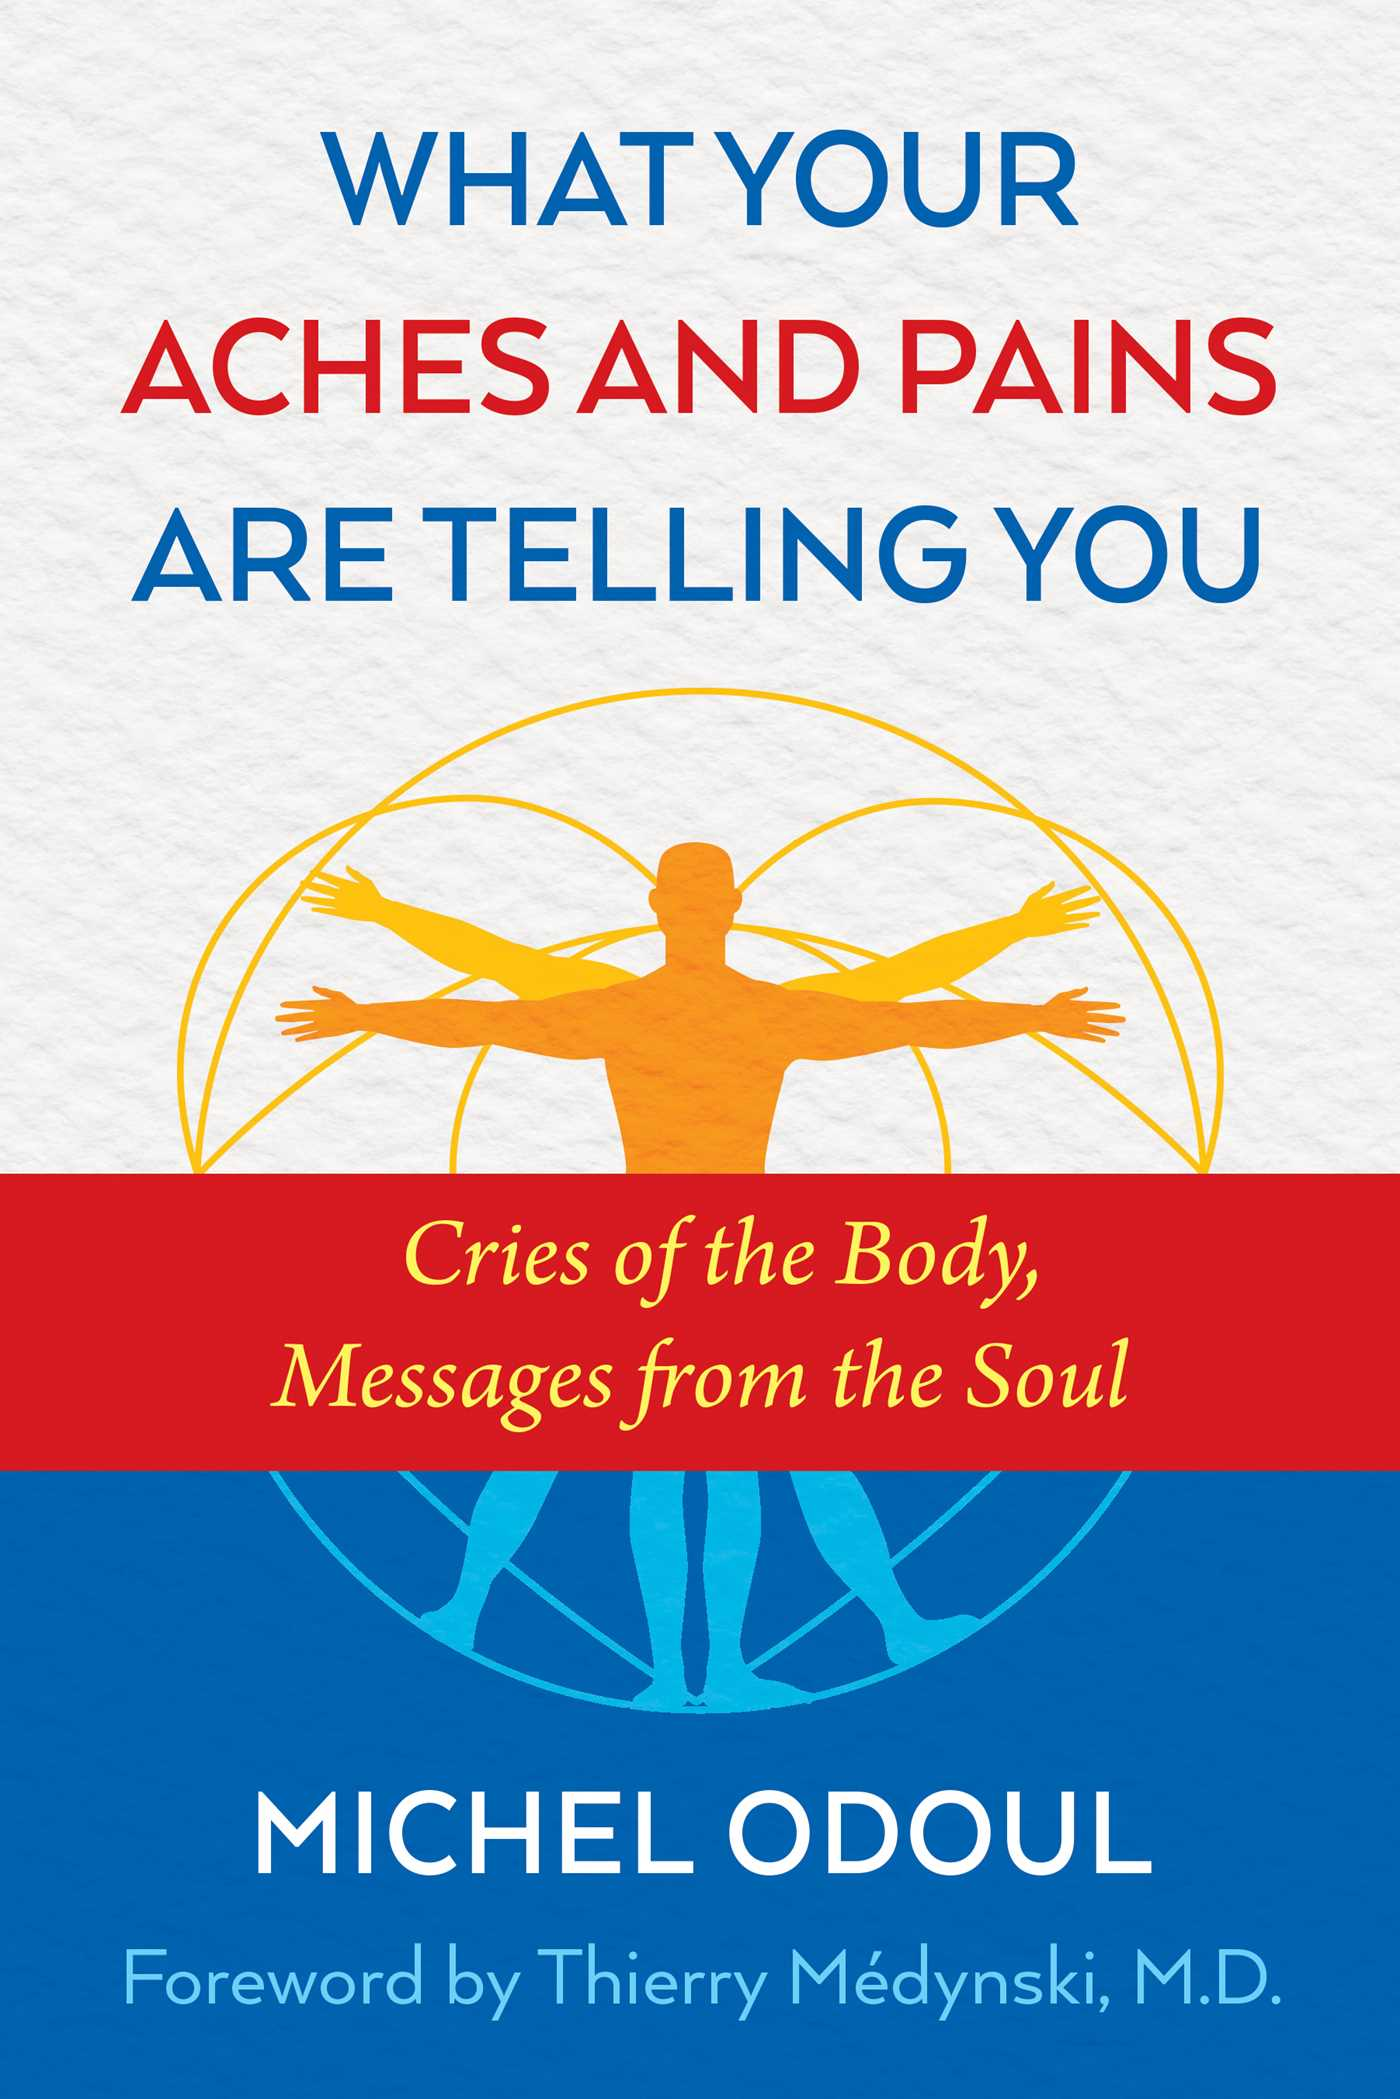 What your aches and pains are telling you 9781620556757 hr